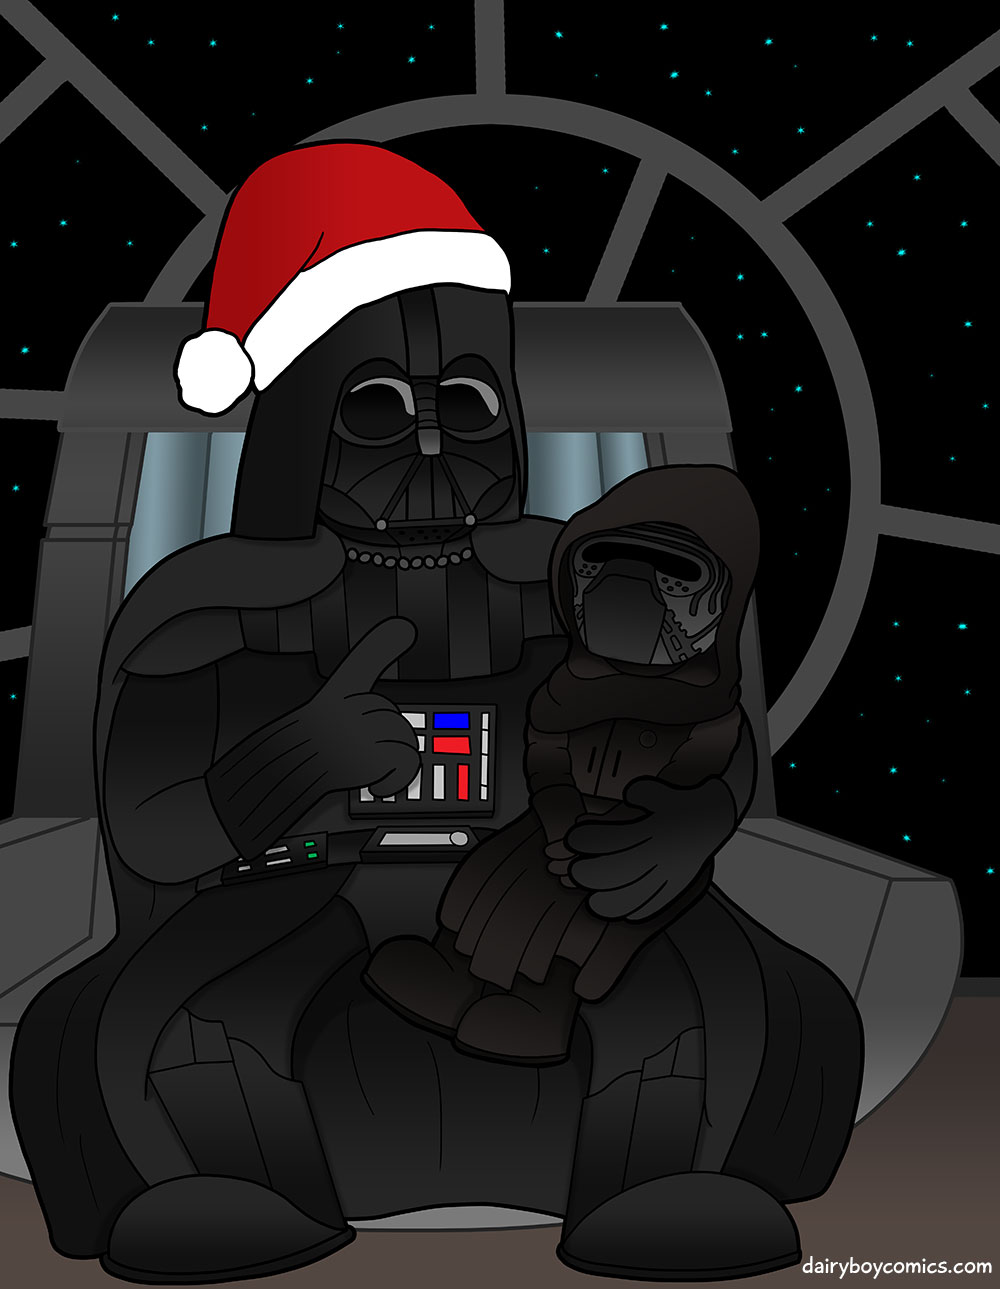 'Have you been evil this year?' 'Yes Vader! Very evil.'